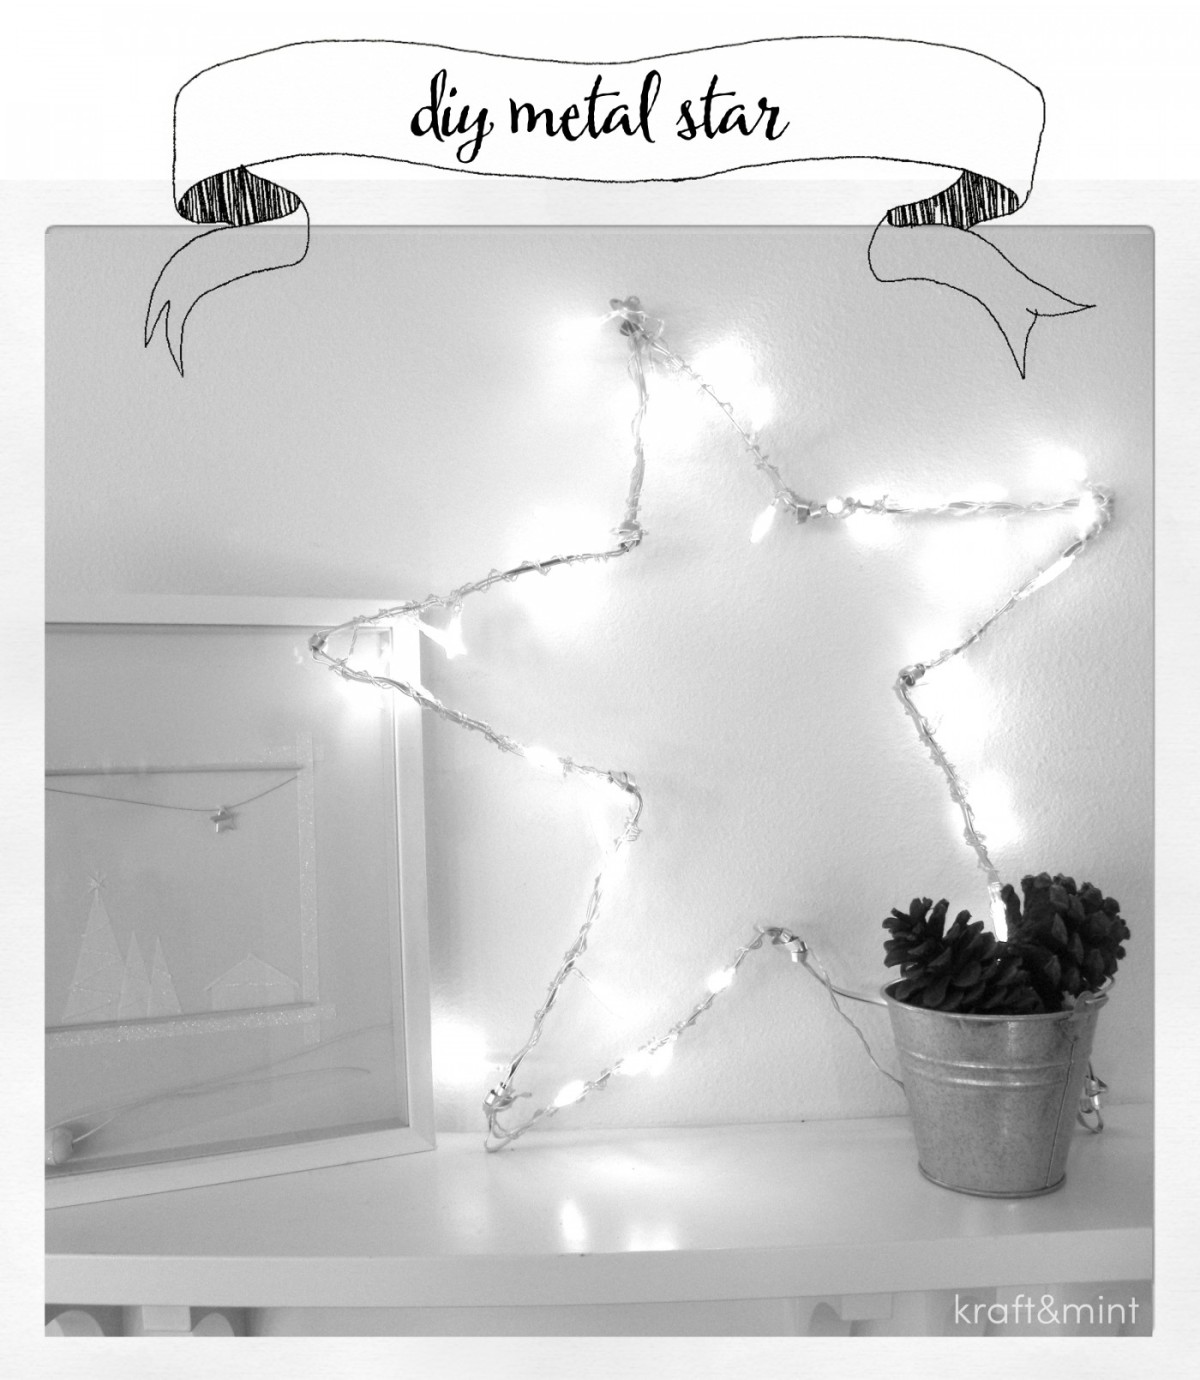 kraft&mint diy star tutorial